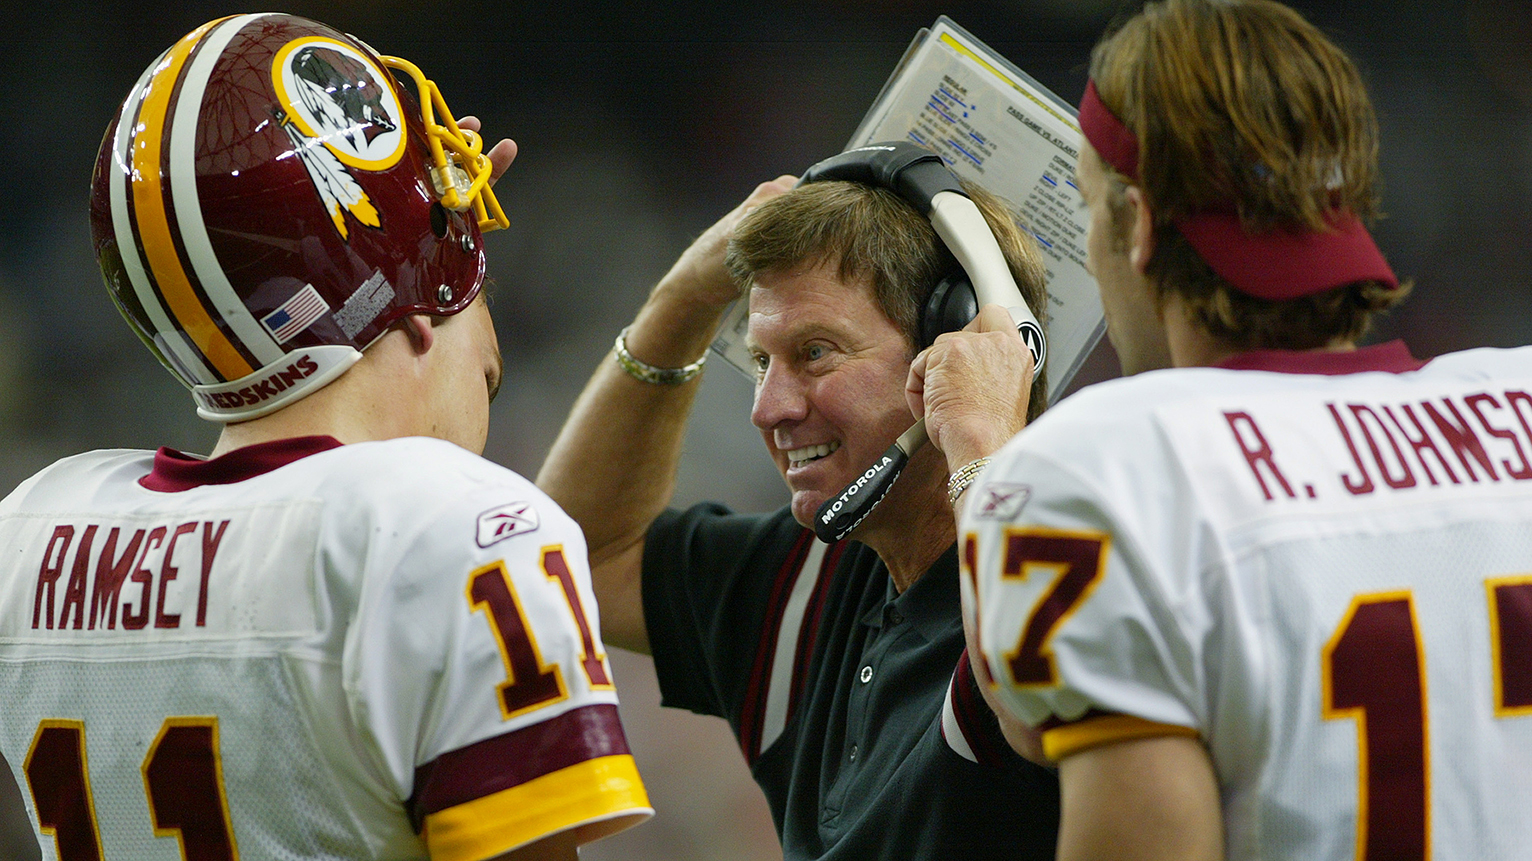 Spurrier returned to college coaching after a failed stint as an NFL head coach in Washington.